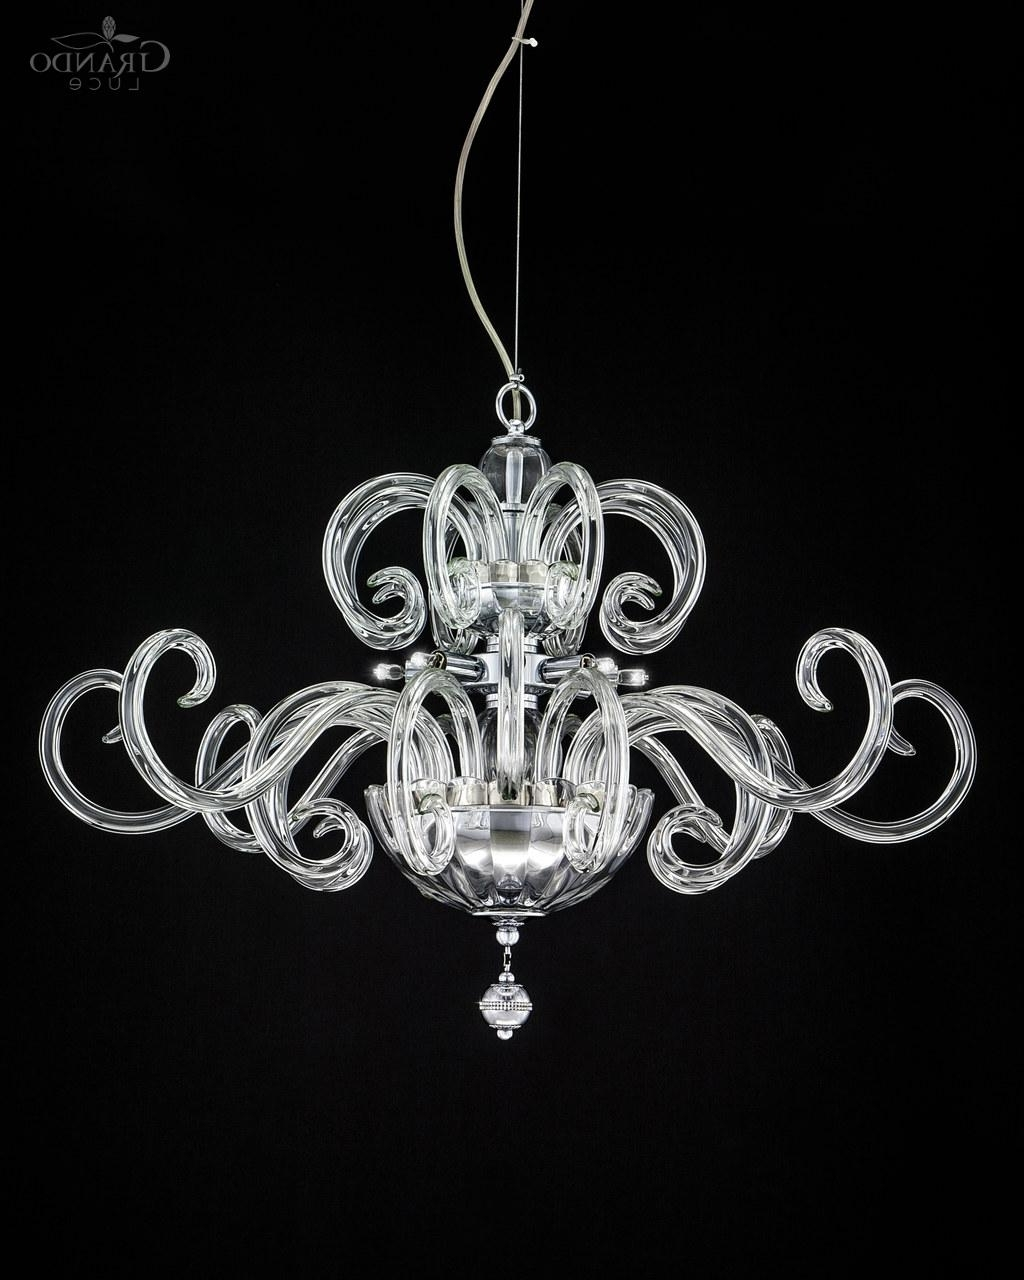 Crystal Chrome Chandeliers Pertaining To Most Up To Date 119/sm Chrome Modern Crystal Chandelier With Swarovski Elements (View 15 of 15)